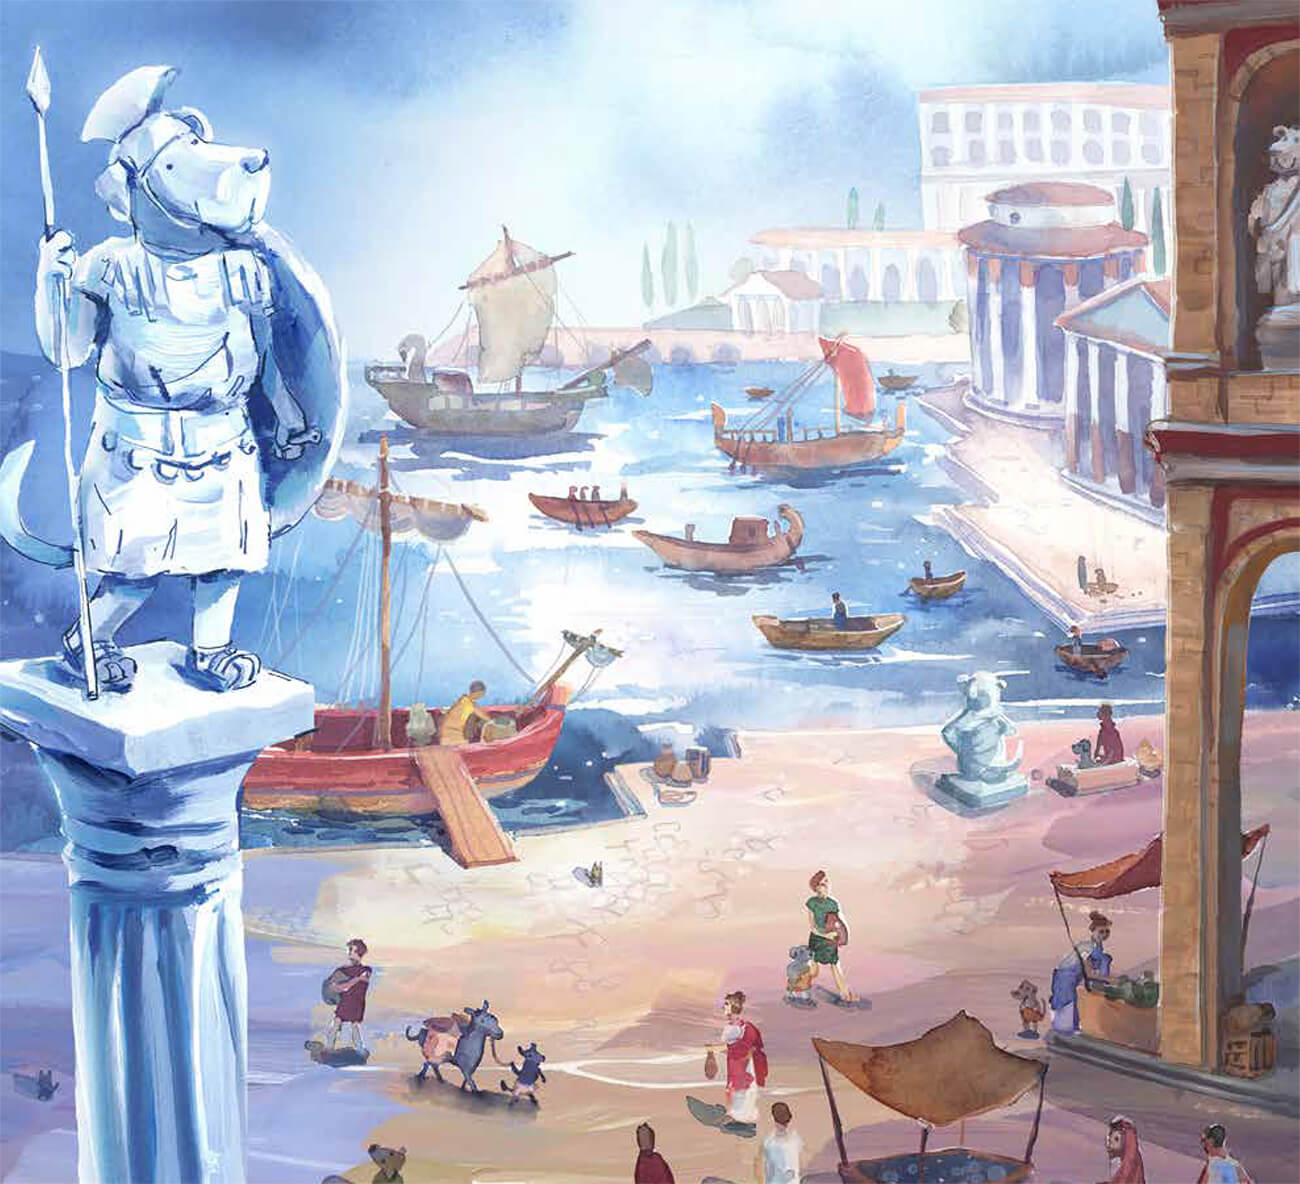 Illustration of an ancient Roman seaport, featuring a pillar of a centurion dog.